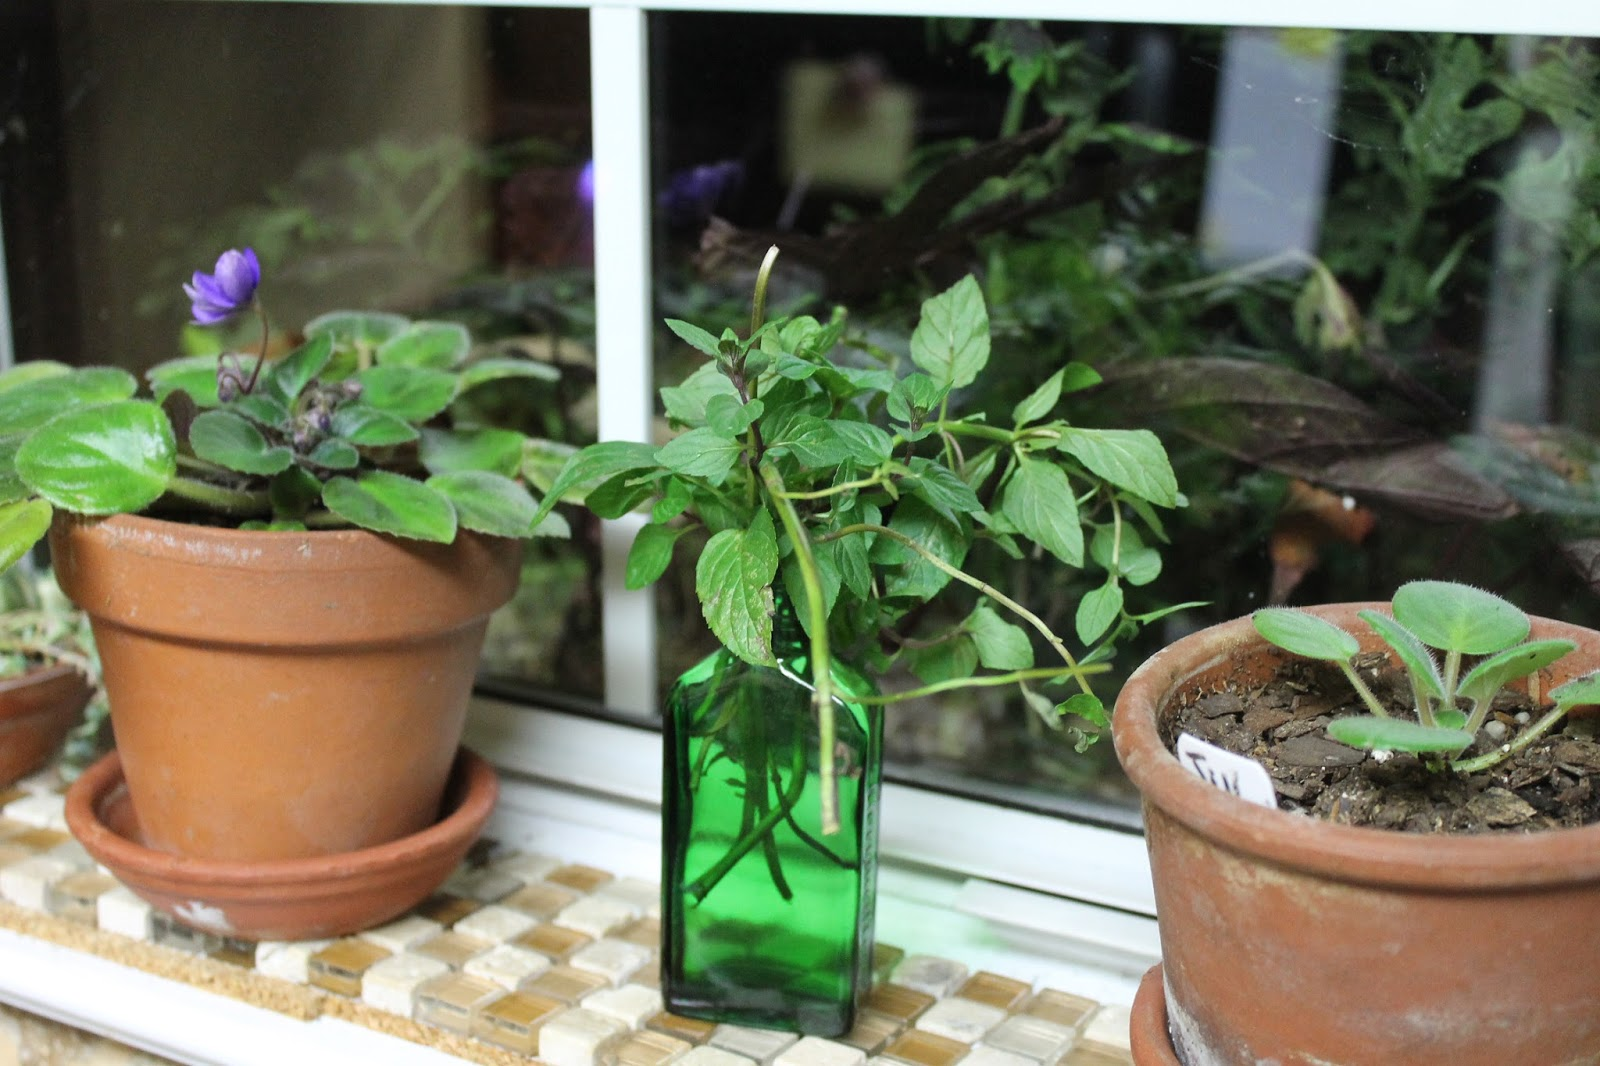 Kitchen window for plants - I Always Have Some Sort Of Plant Rooting In My East Facing Kitchen Window Right Now In Addition To The Sweet Potatoes I Have Mint Coleus And African